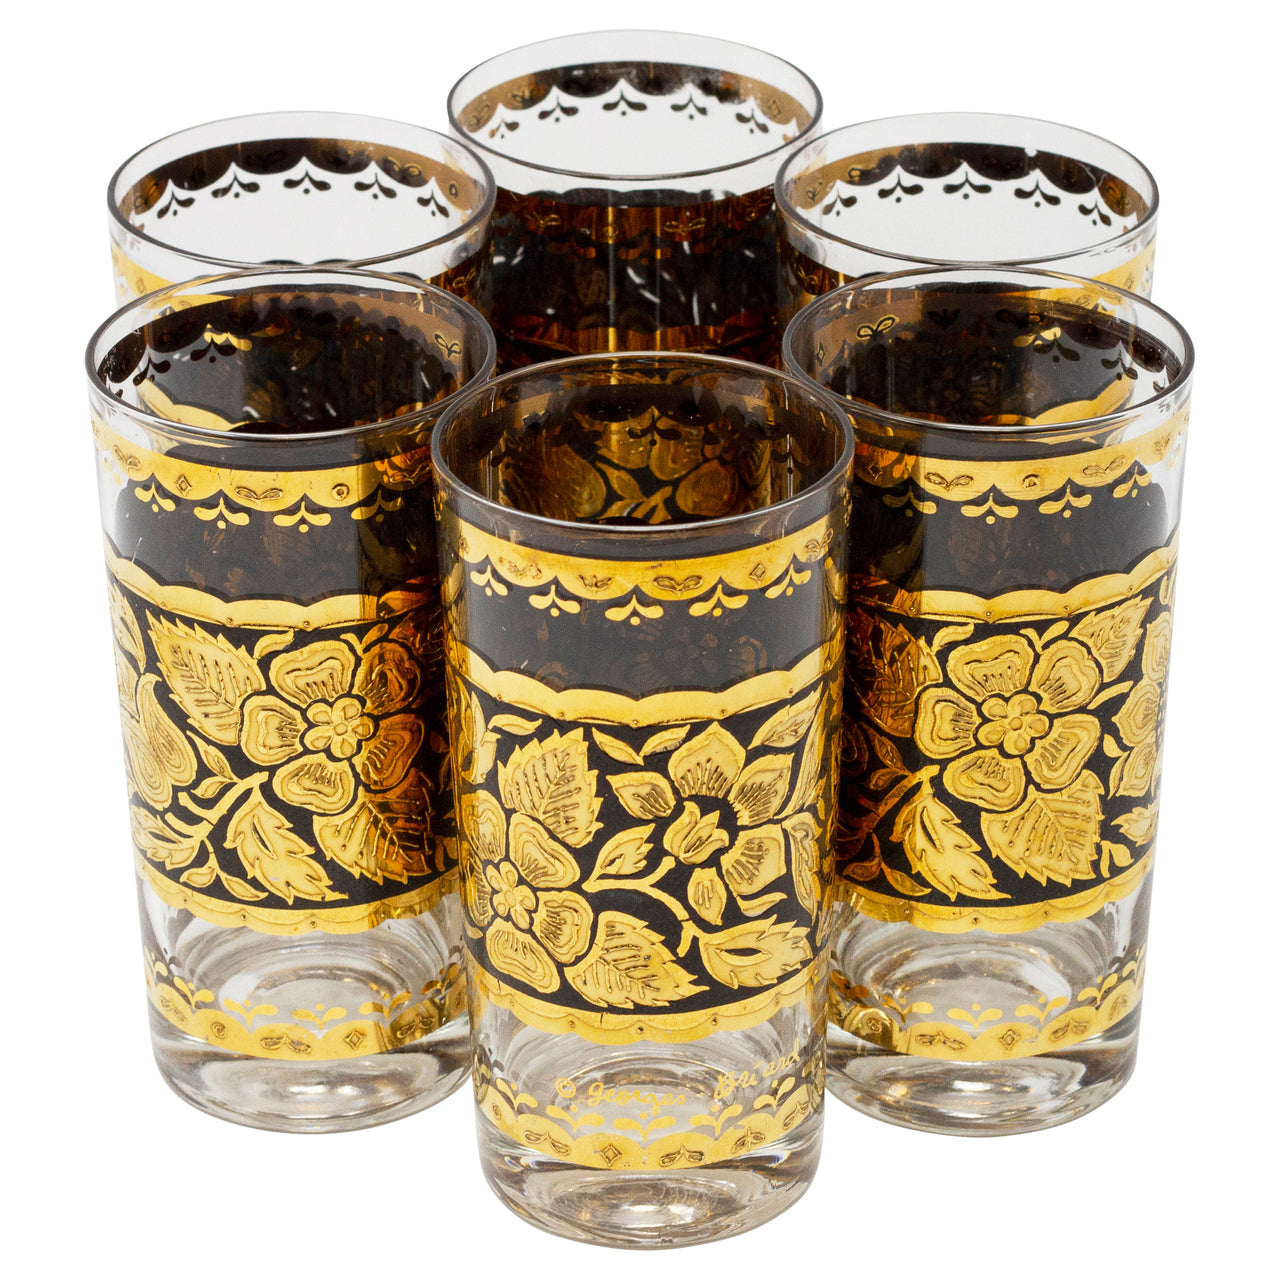 Vintage Georges Briard Gold & Black Floral Collins Glasses | The Hour Shop